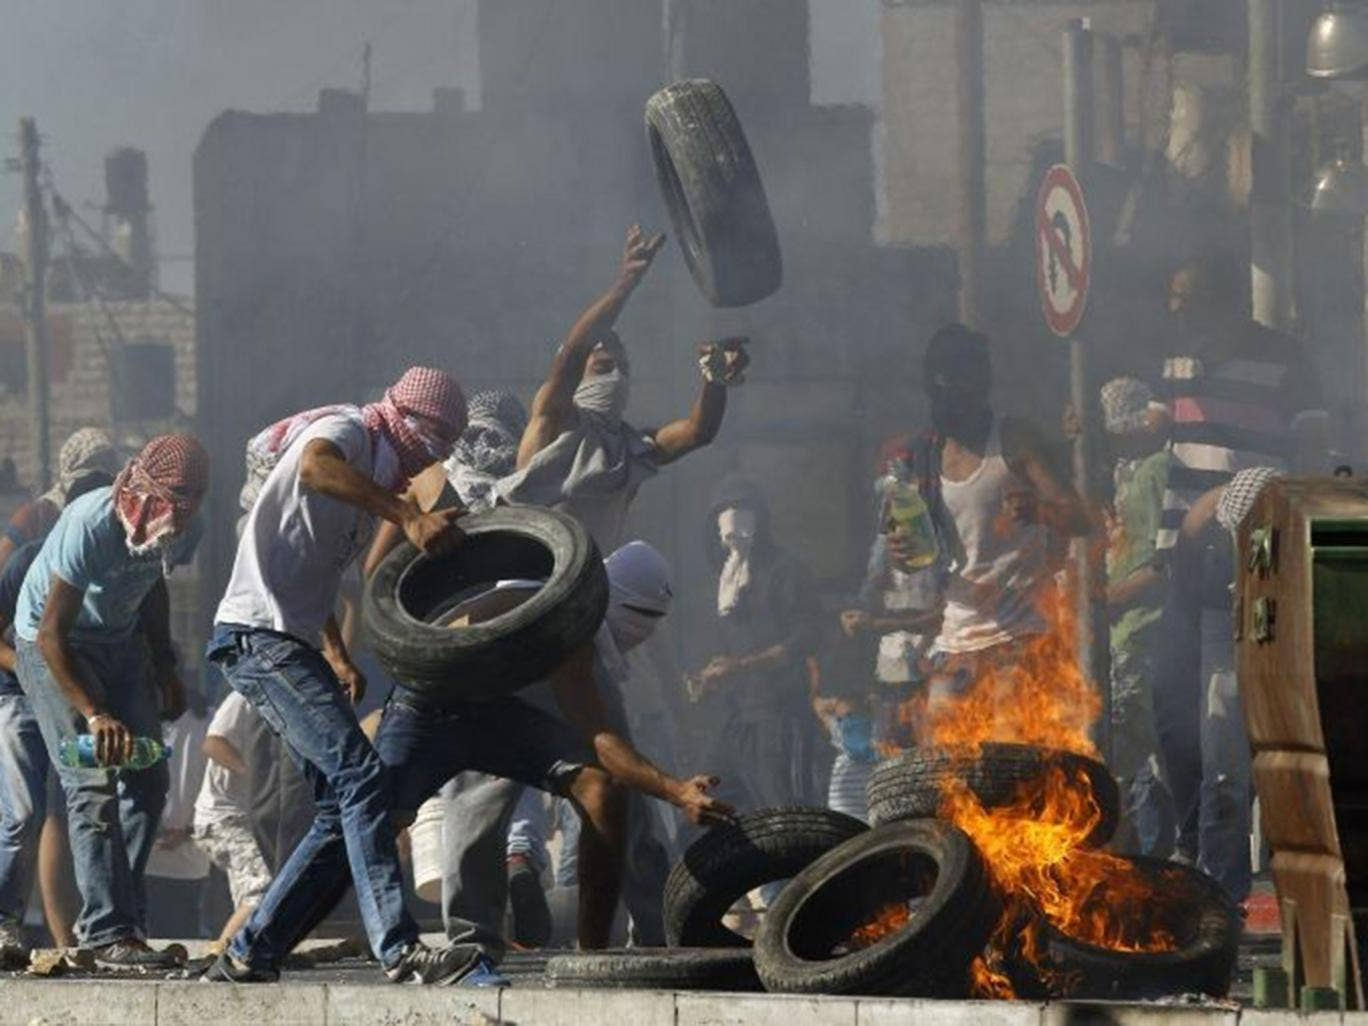 Palestinians set tyres ablaze during clashes with Israeli police in Shuafat, an Arab suburb of Jerusalem July 2, 2014.